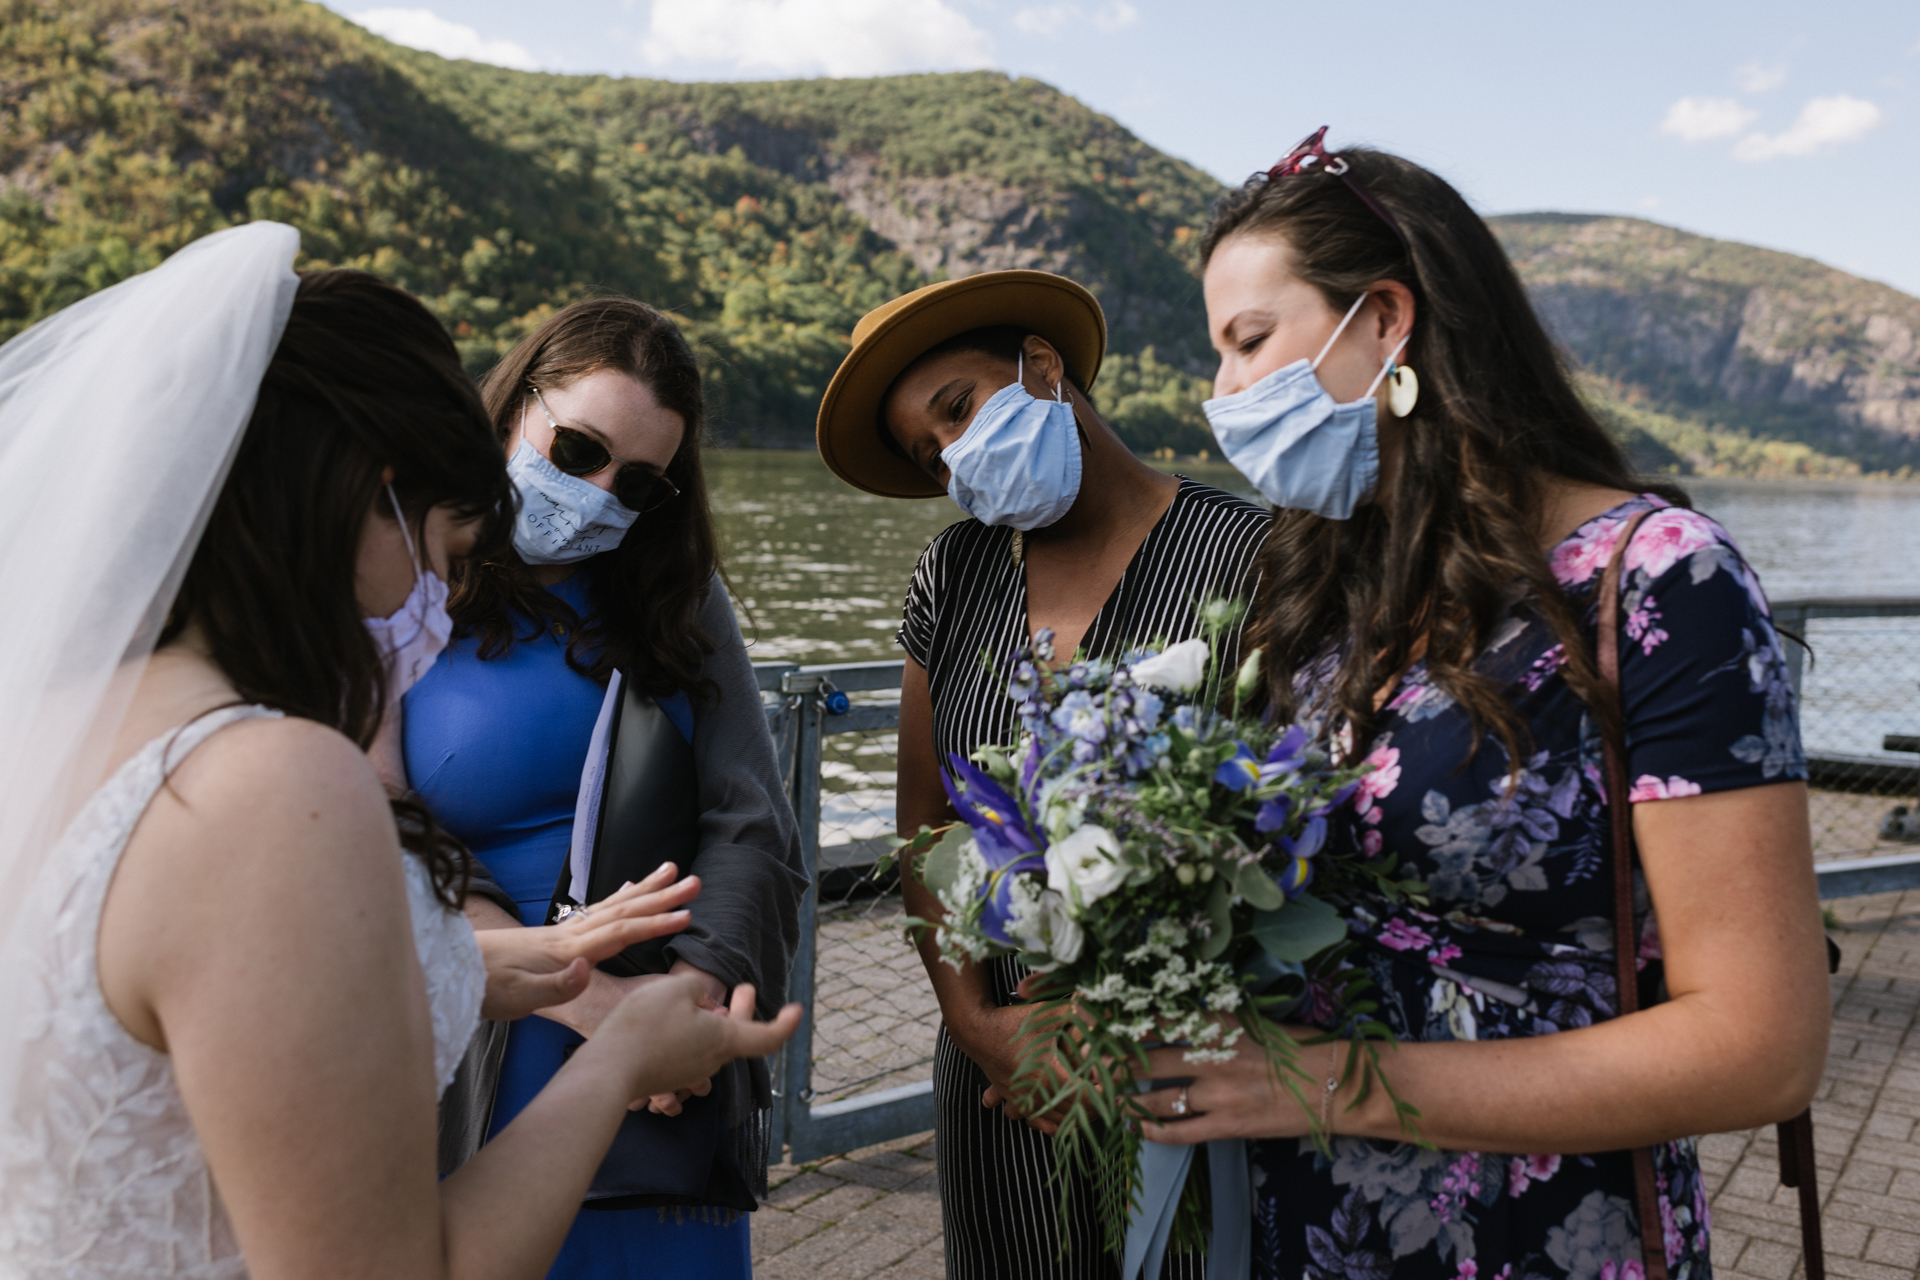 NY Wedding Photography from Dockside Park, Cold Spring | The bride shows her new wedding ring to friends